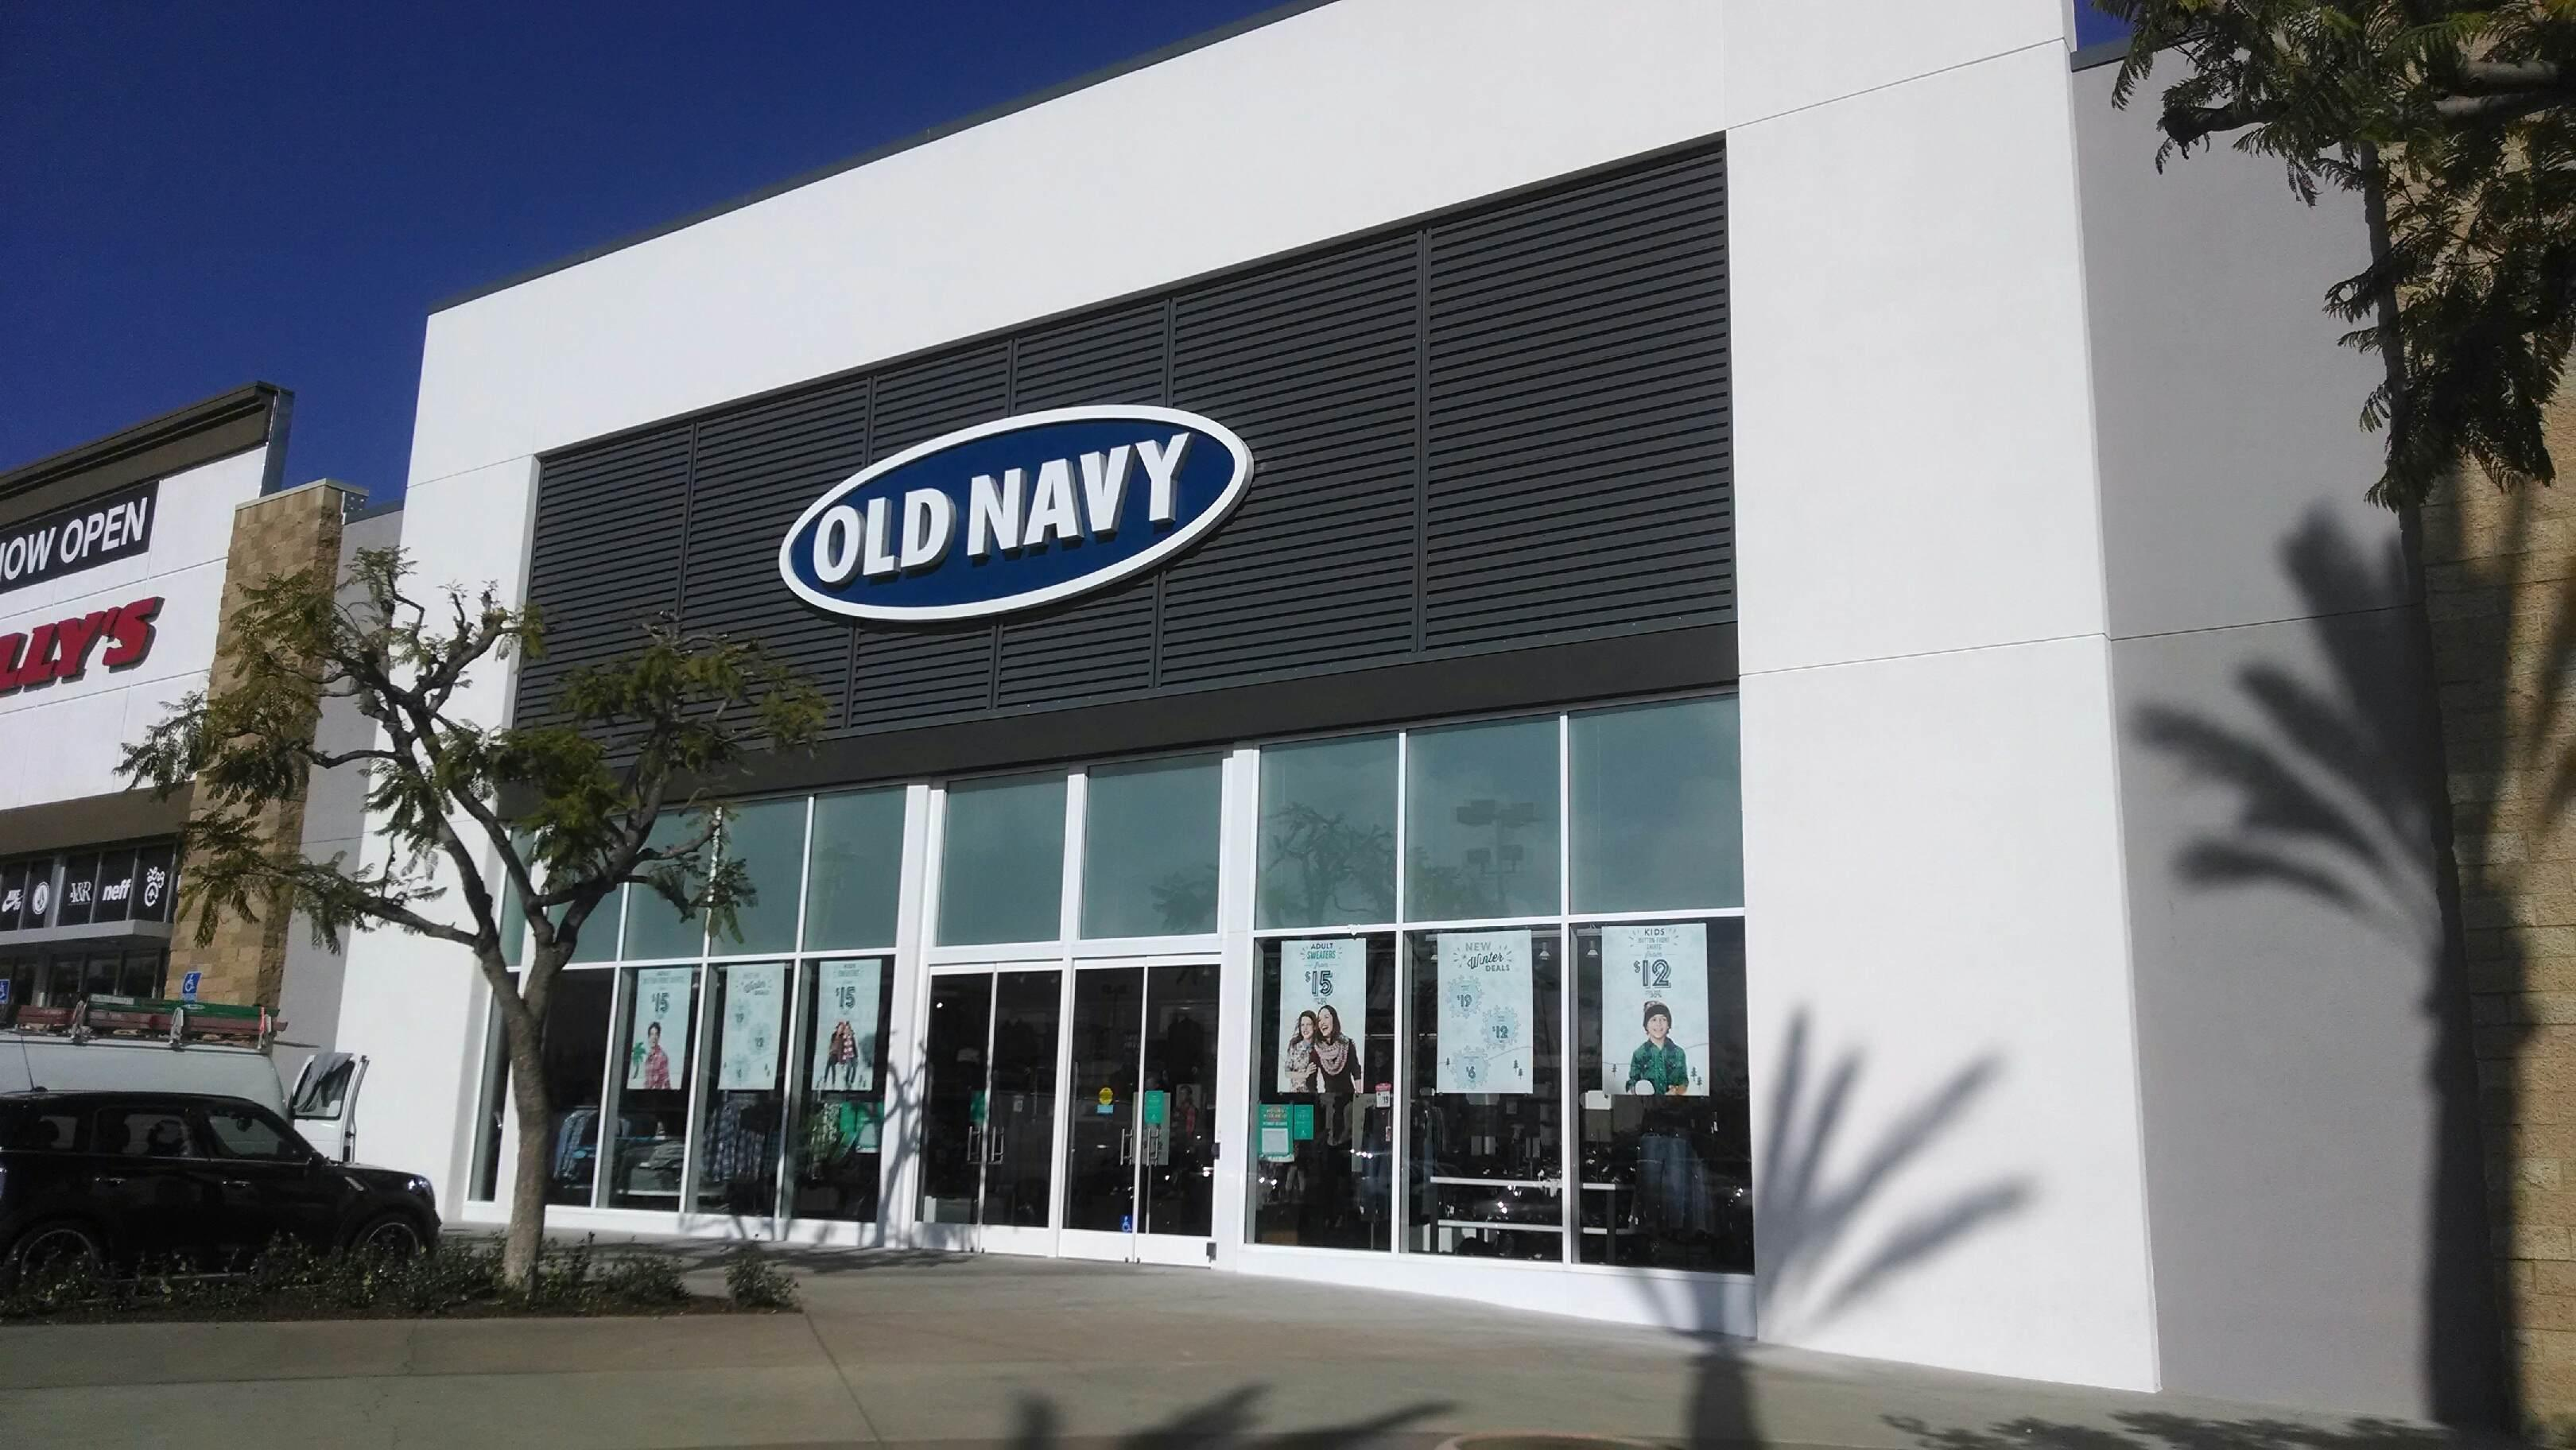 Old Navy Pasadena - All Venture Glass